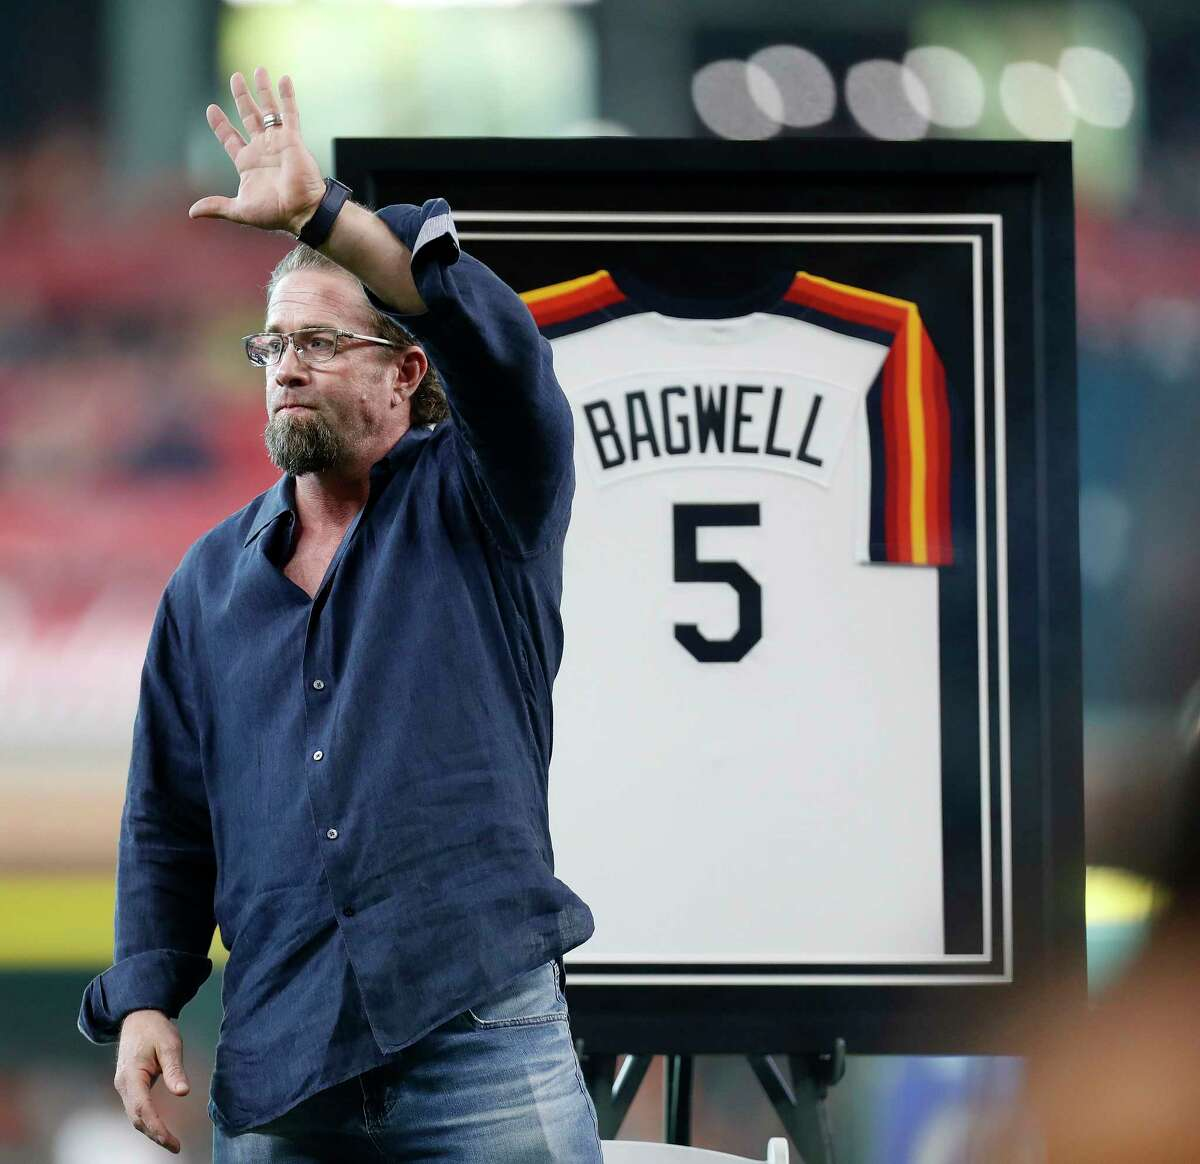 Jeff Bagwell waves to fans during a ceremony to honor his recent induction into the National Baseball Hall of Fame before the start of an MLB game at Minute Maid Park, Saturday, Aug. 5, 2017, in Houston.